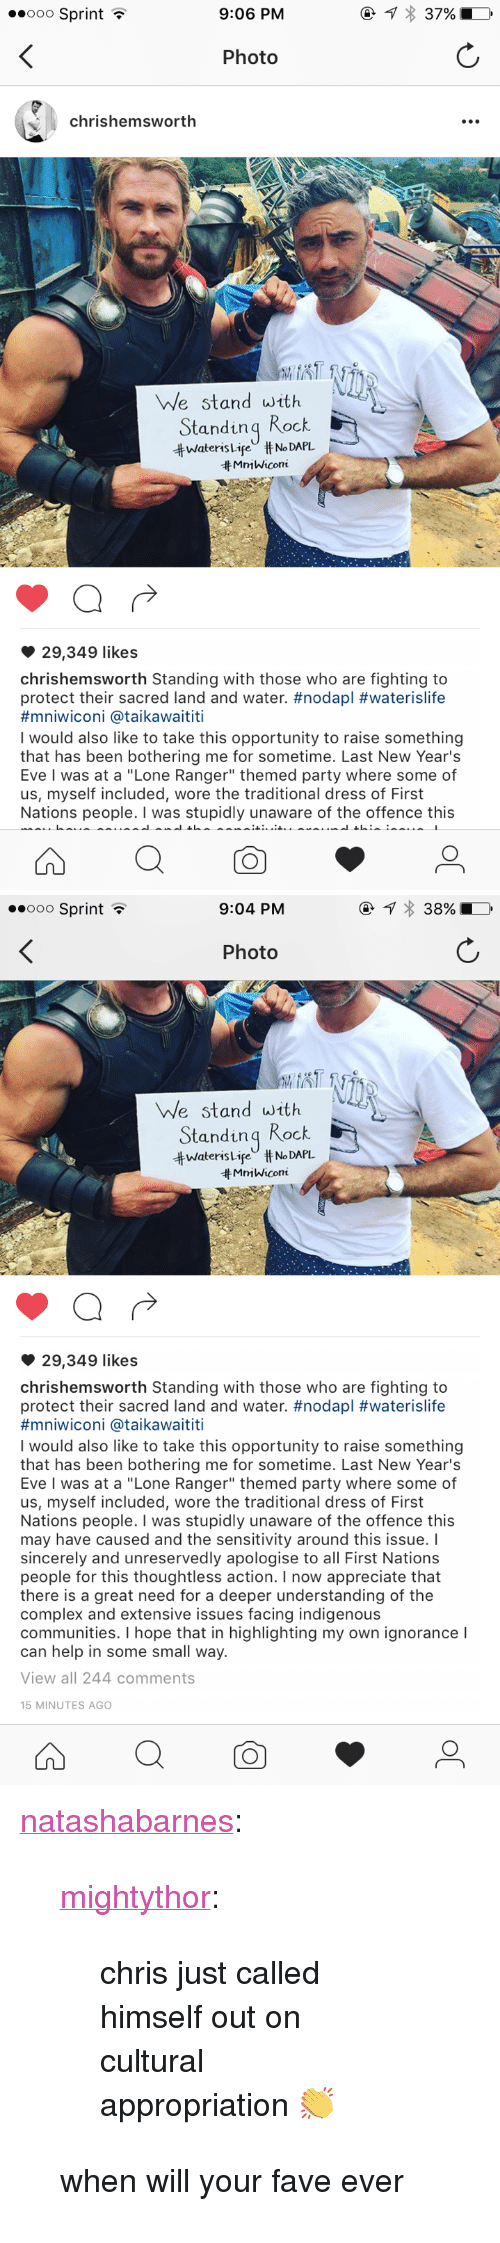 "Complex, Party, and Tumblr: ooO Sprint  9:06 PM  Photo  chrishemswortlh  We stand with  Standinq Rock  井Waters LifeU #No DAPL  Mn1 Wicom  29,349 likes  chrishemsworth Standing with those who are fighting to  protect their sacred land and water. #nodapl #waterislife  #mn.wicon. @taikawaititi  I would also like to take this opportunity to raise something  that has been bothering me for sometime. Last New Year's  Eve I was at a ""Lone Ranger"" themed party where some of  us, myself included, wore the traditional dress of First  Nations people. I was stupidly unaware of the offence this   ooo Sprint  9:04 PM  Photo  We stand with  Standinq Rock  ttwateris Lir"" # No DAPL.  tt MmWicom  29,349 likes  chrishemsworth Standing with those who are fighting to  protect their sacred land and water. #nodapl #waterislife  #mniwicon. @ta.kawaititi  I would also like to take this opportunity to raise something  that has been bothering me for sometime. Last New Year's  Eve I was at a ""Lone Ranger"" themed party where some of  us, myself included, wore the traditional dress of First  Nations people. I was stupidly unaware of the offence this  may have caused and the sensitivity around this issue. I  sincerely and unreservedly apologise to all First Nations  people for this thoughtless action. I now appreciate that  there is a great need for a deeper understanding of the  complex and extensive issues facing indigenous  communities. I hope that in highlighting my own ignorance I  can help in some small way.  View all 244 comments  15 MINUTES AGO <p><a class=""tumblr_blog"" href=""http://natashabarnes.tumblr.com/post/152405570879"">natashabarnes</a>:</p> <blockquote> <p><a class=""tumblr_blog"" href=""http://mightythor.tumblr.com/post/152405529477"">mightythor</a>:</p> <blockquote> <p>chris just called himself out on cultural appropriation 👏</p> </blockquote> <p>when will your fave ever</p> </blockquote>"